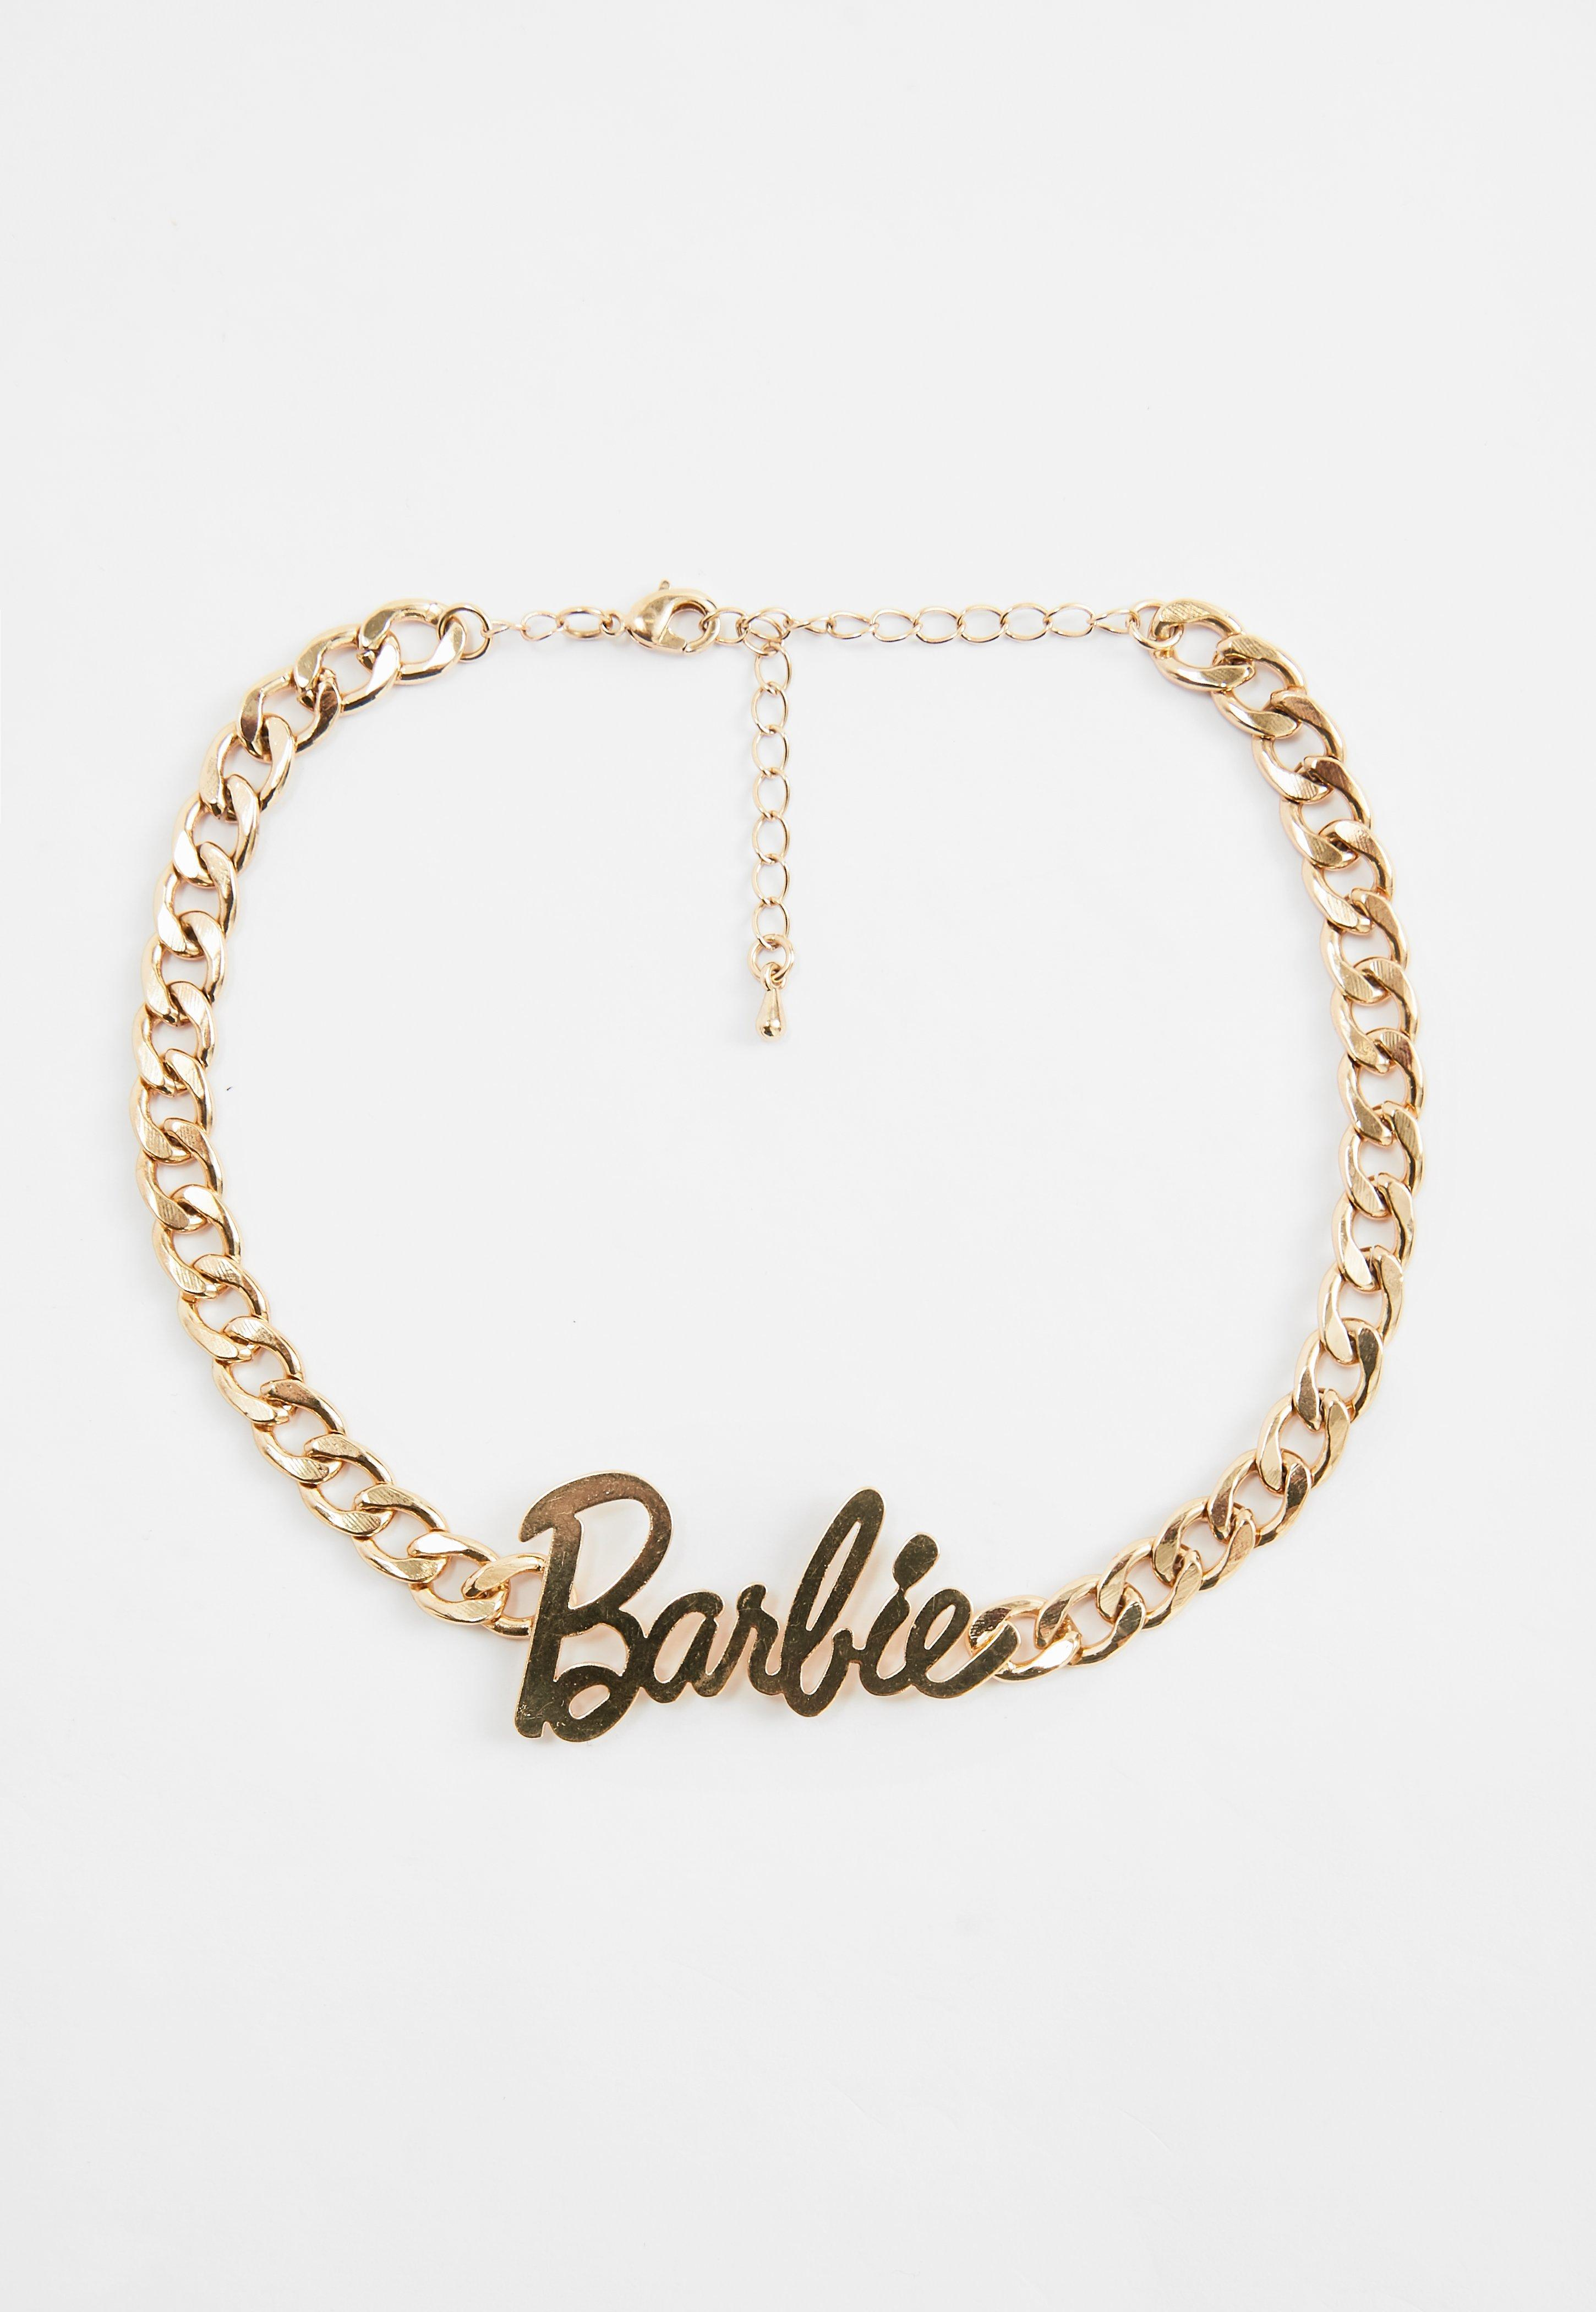 BARBIE JEWELRY GOLD BOW TIE SHAPED NECKLACE EARRINGS /& BRACELET  for Barbie